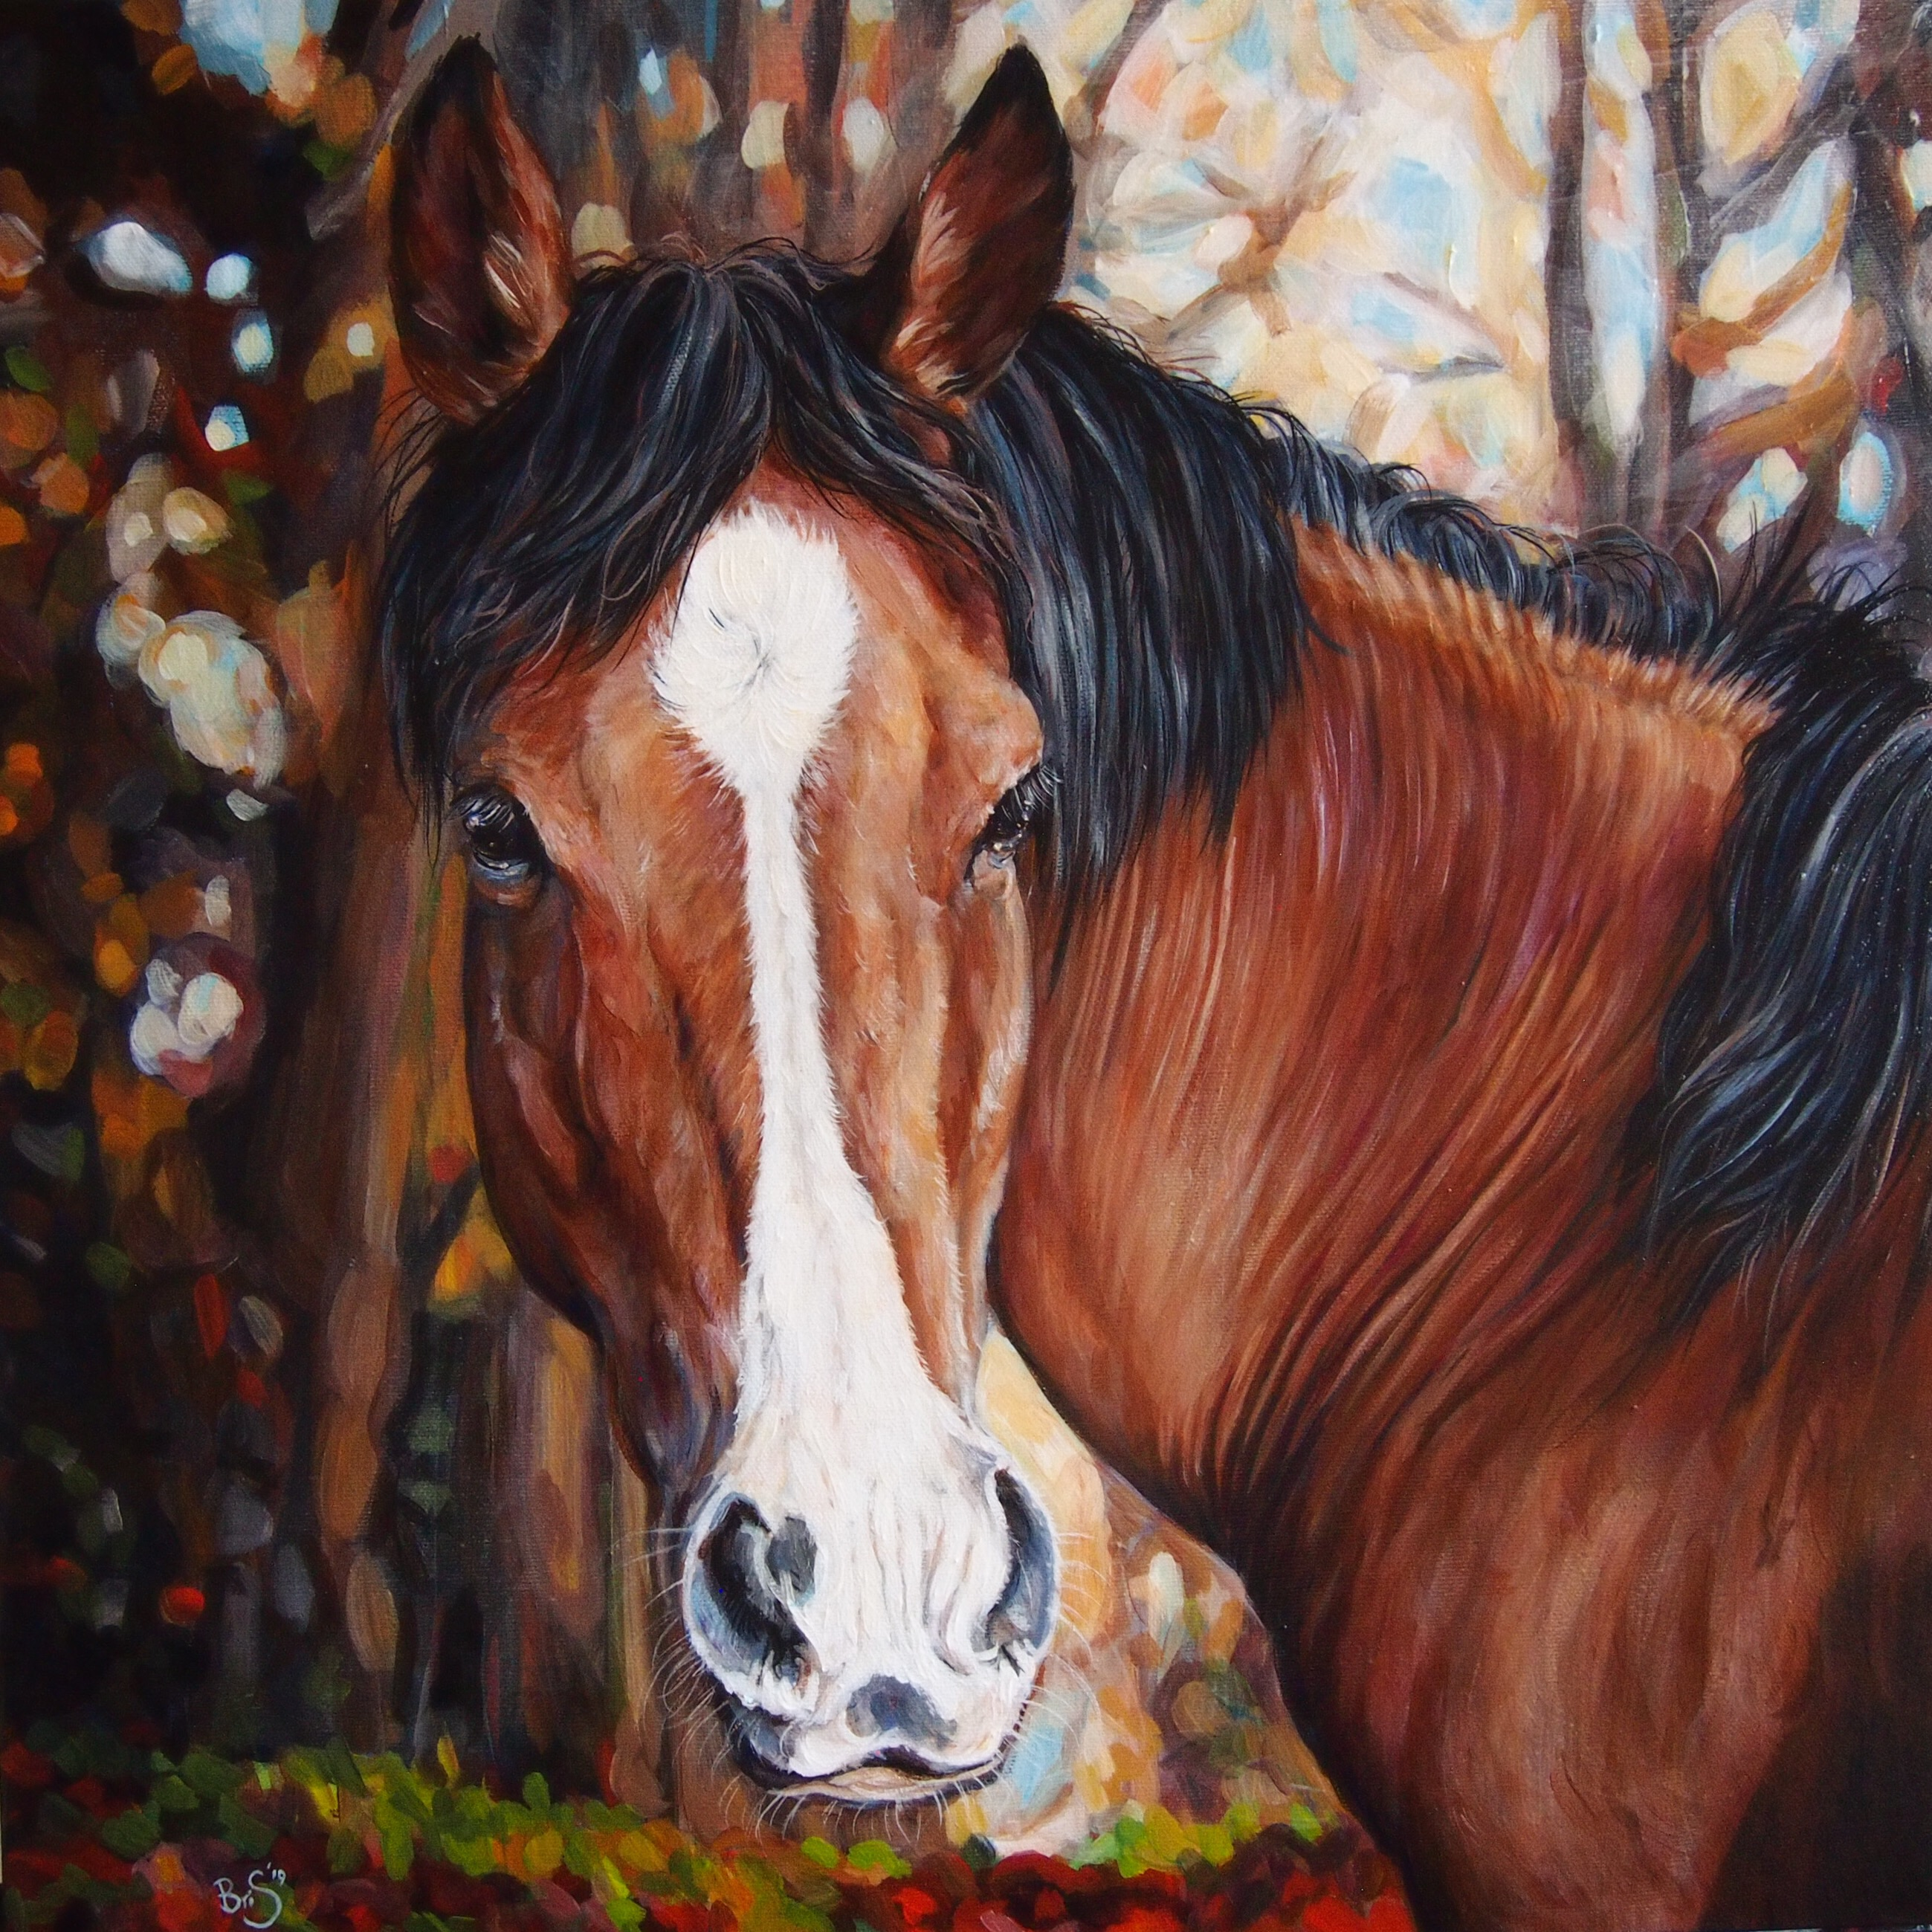 Large horse portrait